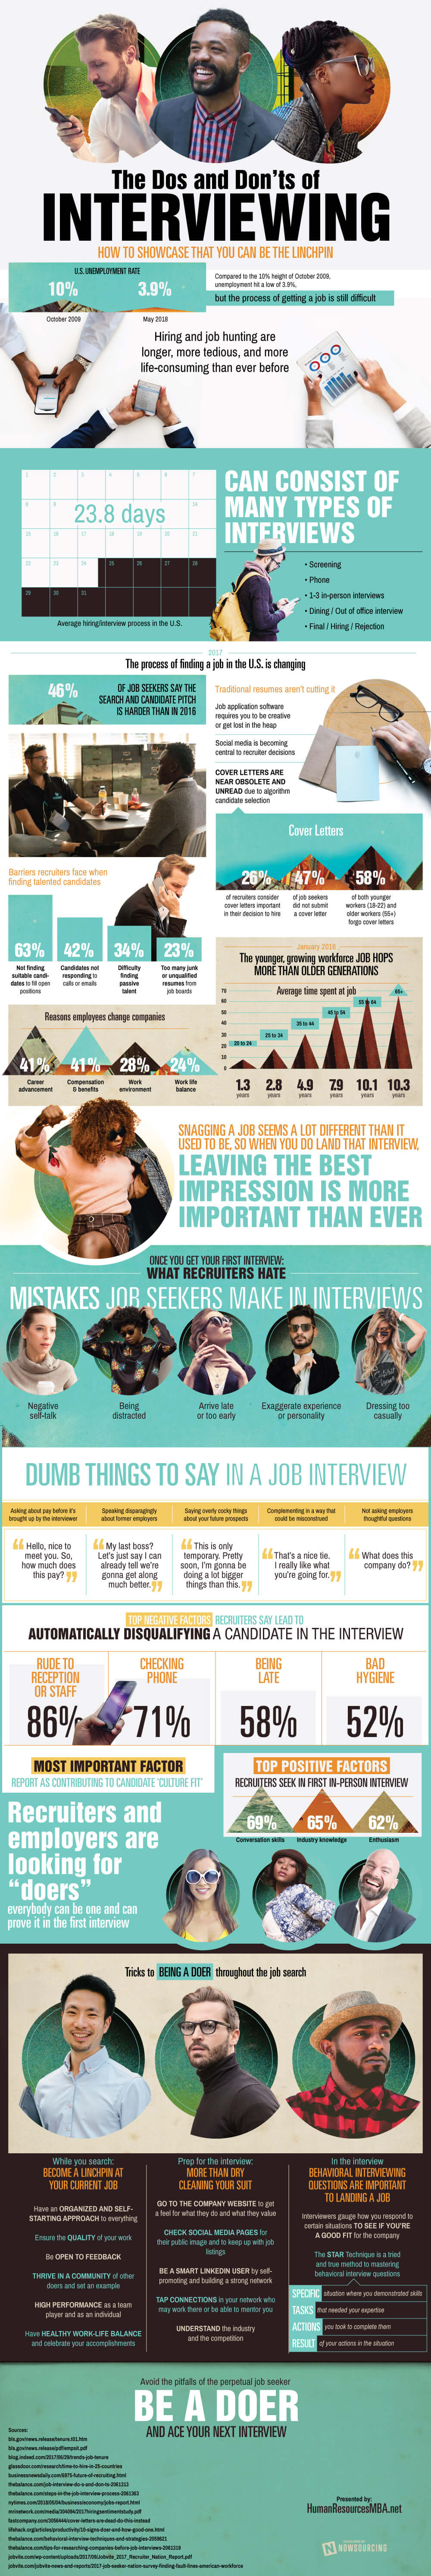 The Dos And Don'ts Of Interviewing